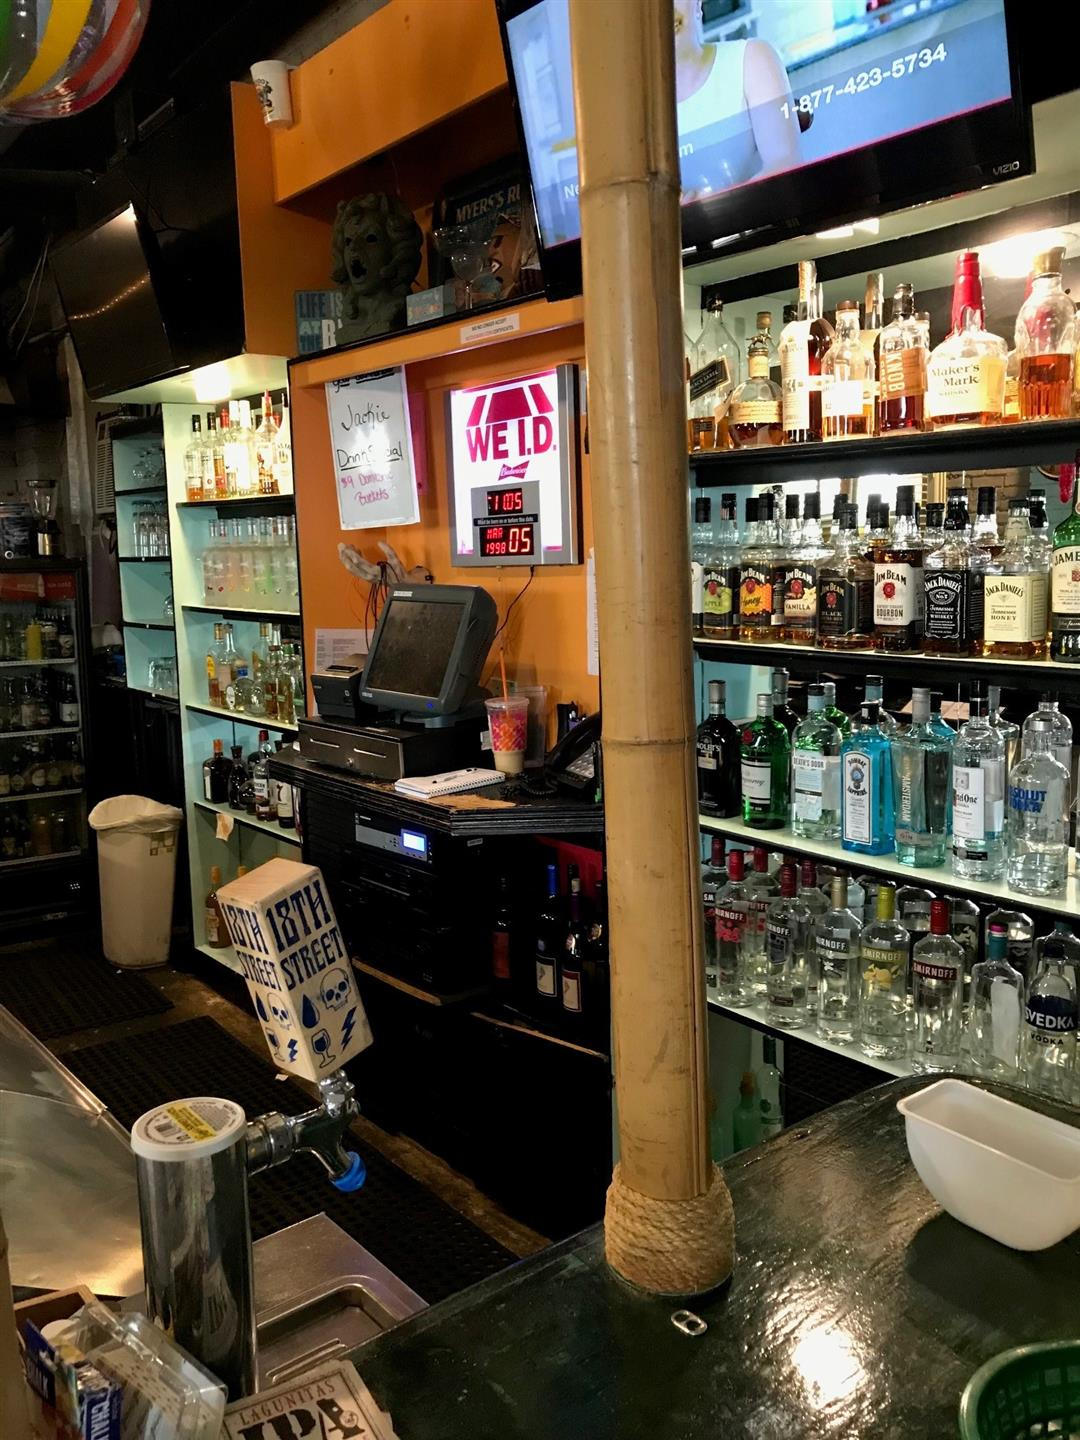 view of bar with wood paneling behind register, and shelves with assorted bottles of liquor